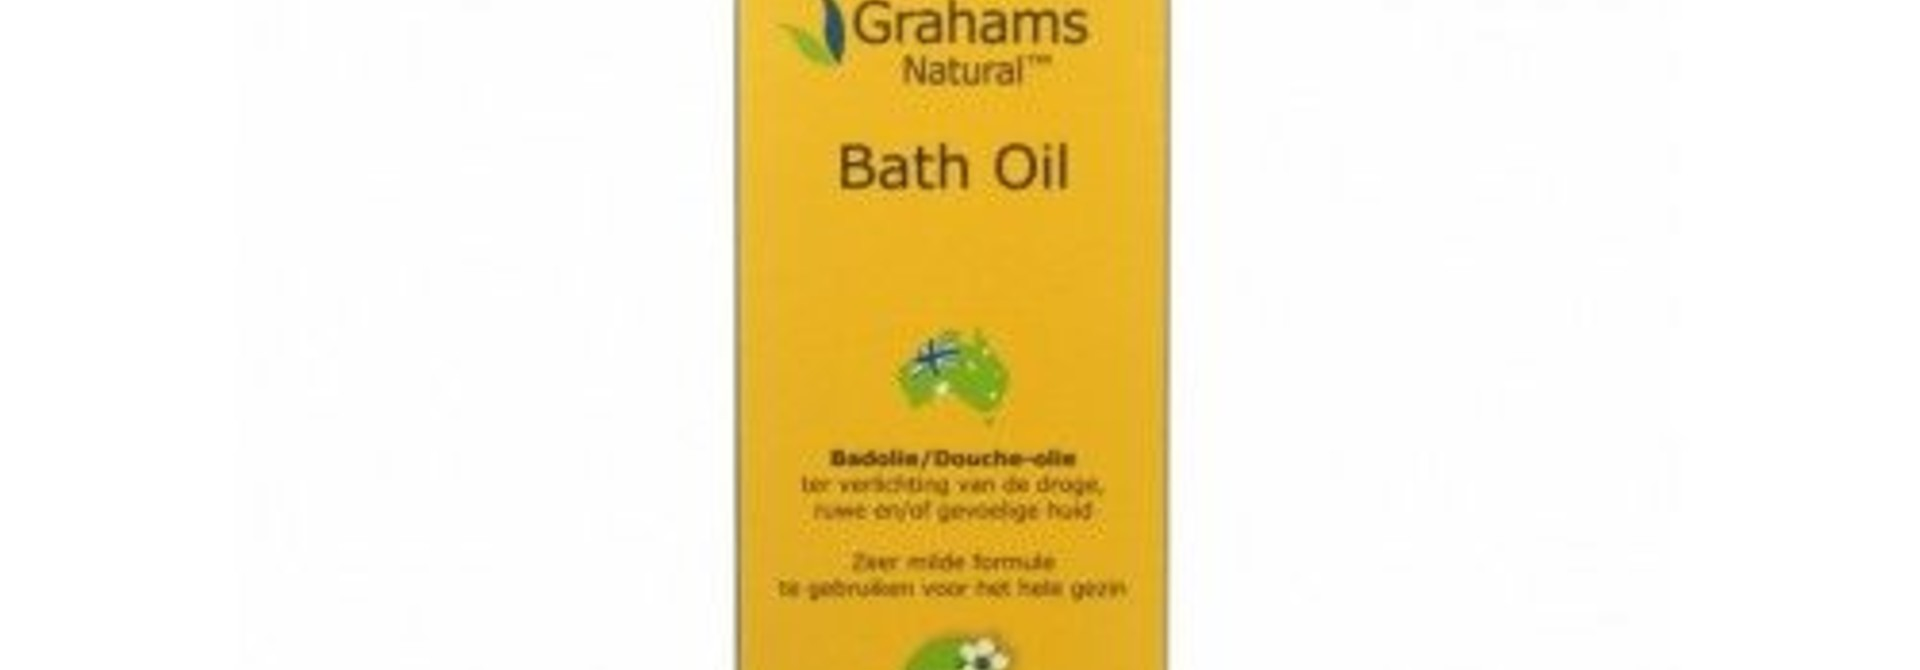 Grahams bad olie 120 ml